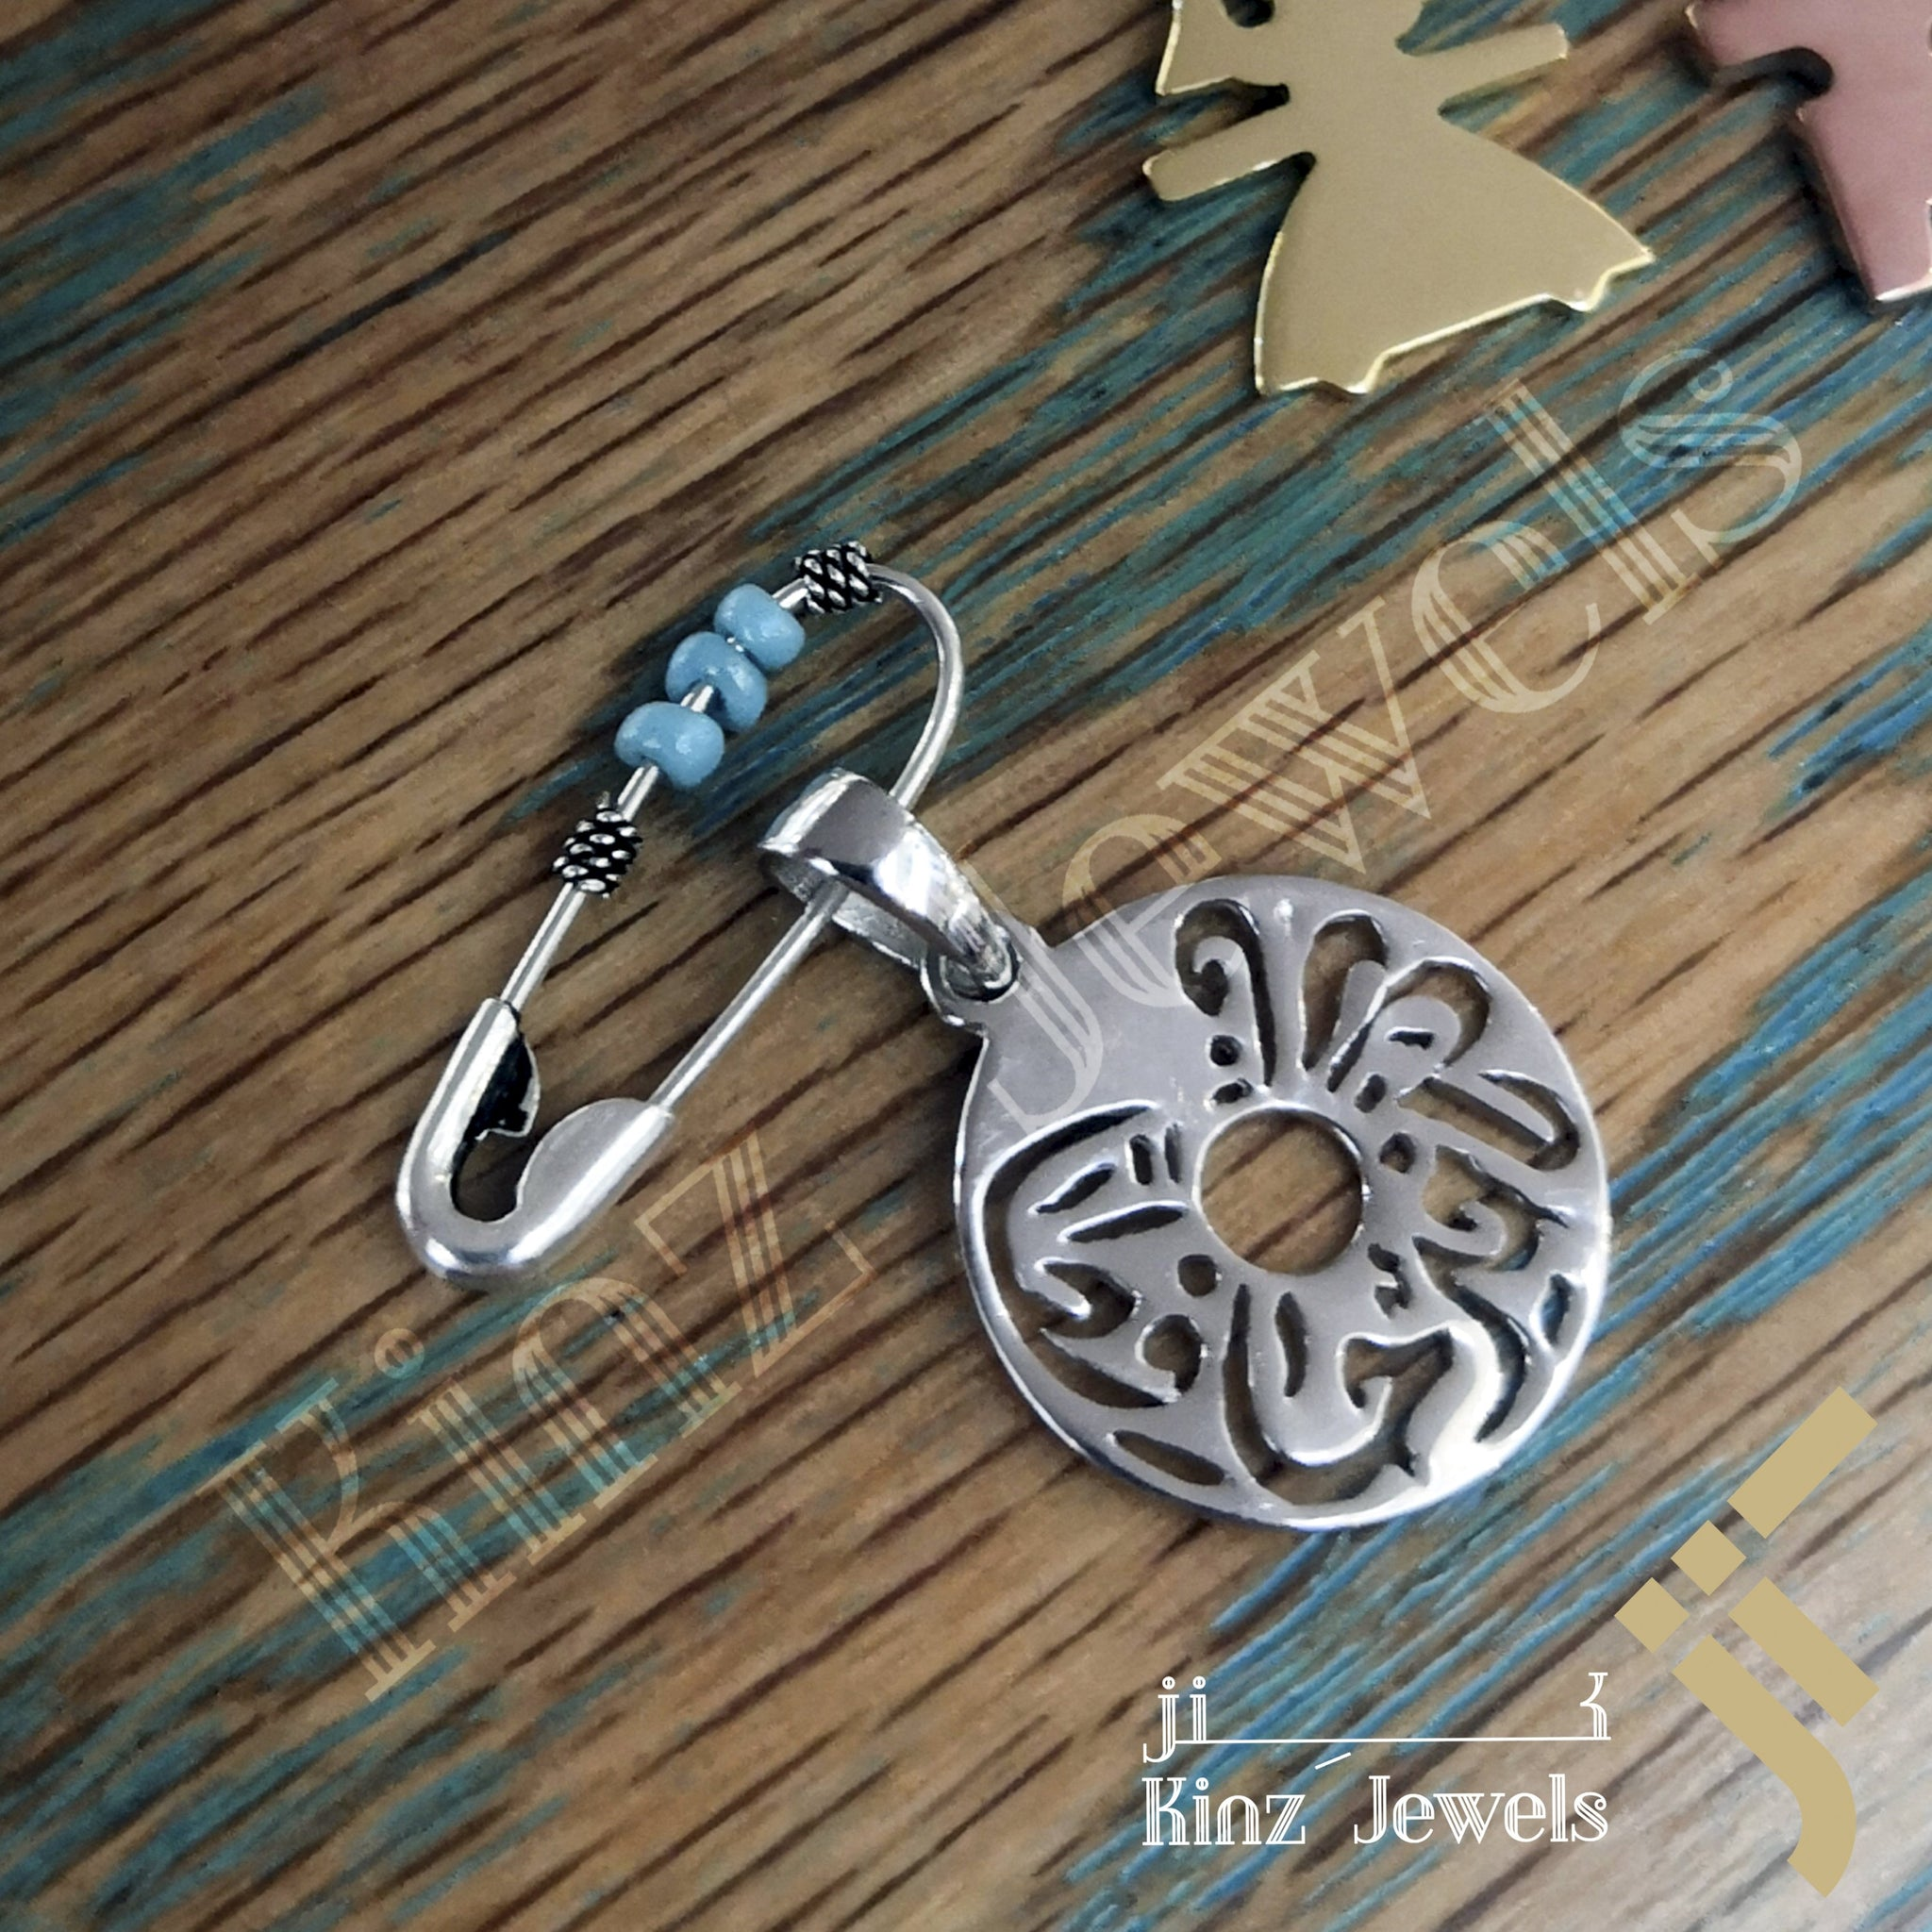 kinzjewels - Silver Turquoise Pin Brooch And Silver Pendant For Baby - But Allah Is The Best Keeper